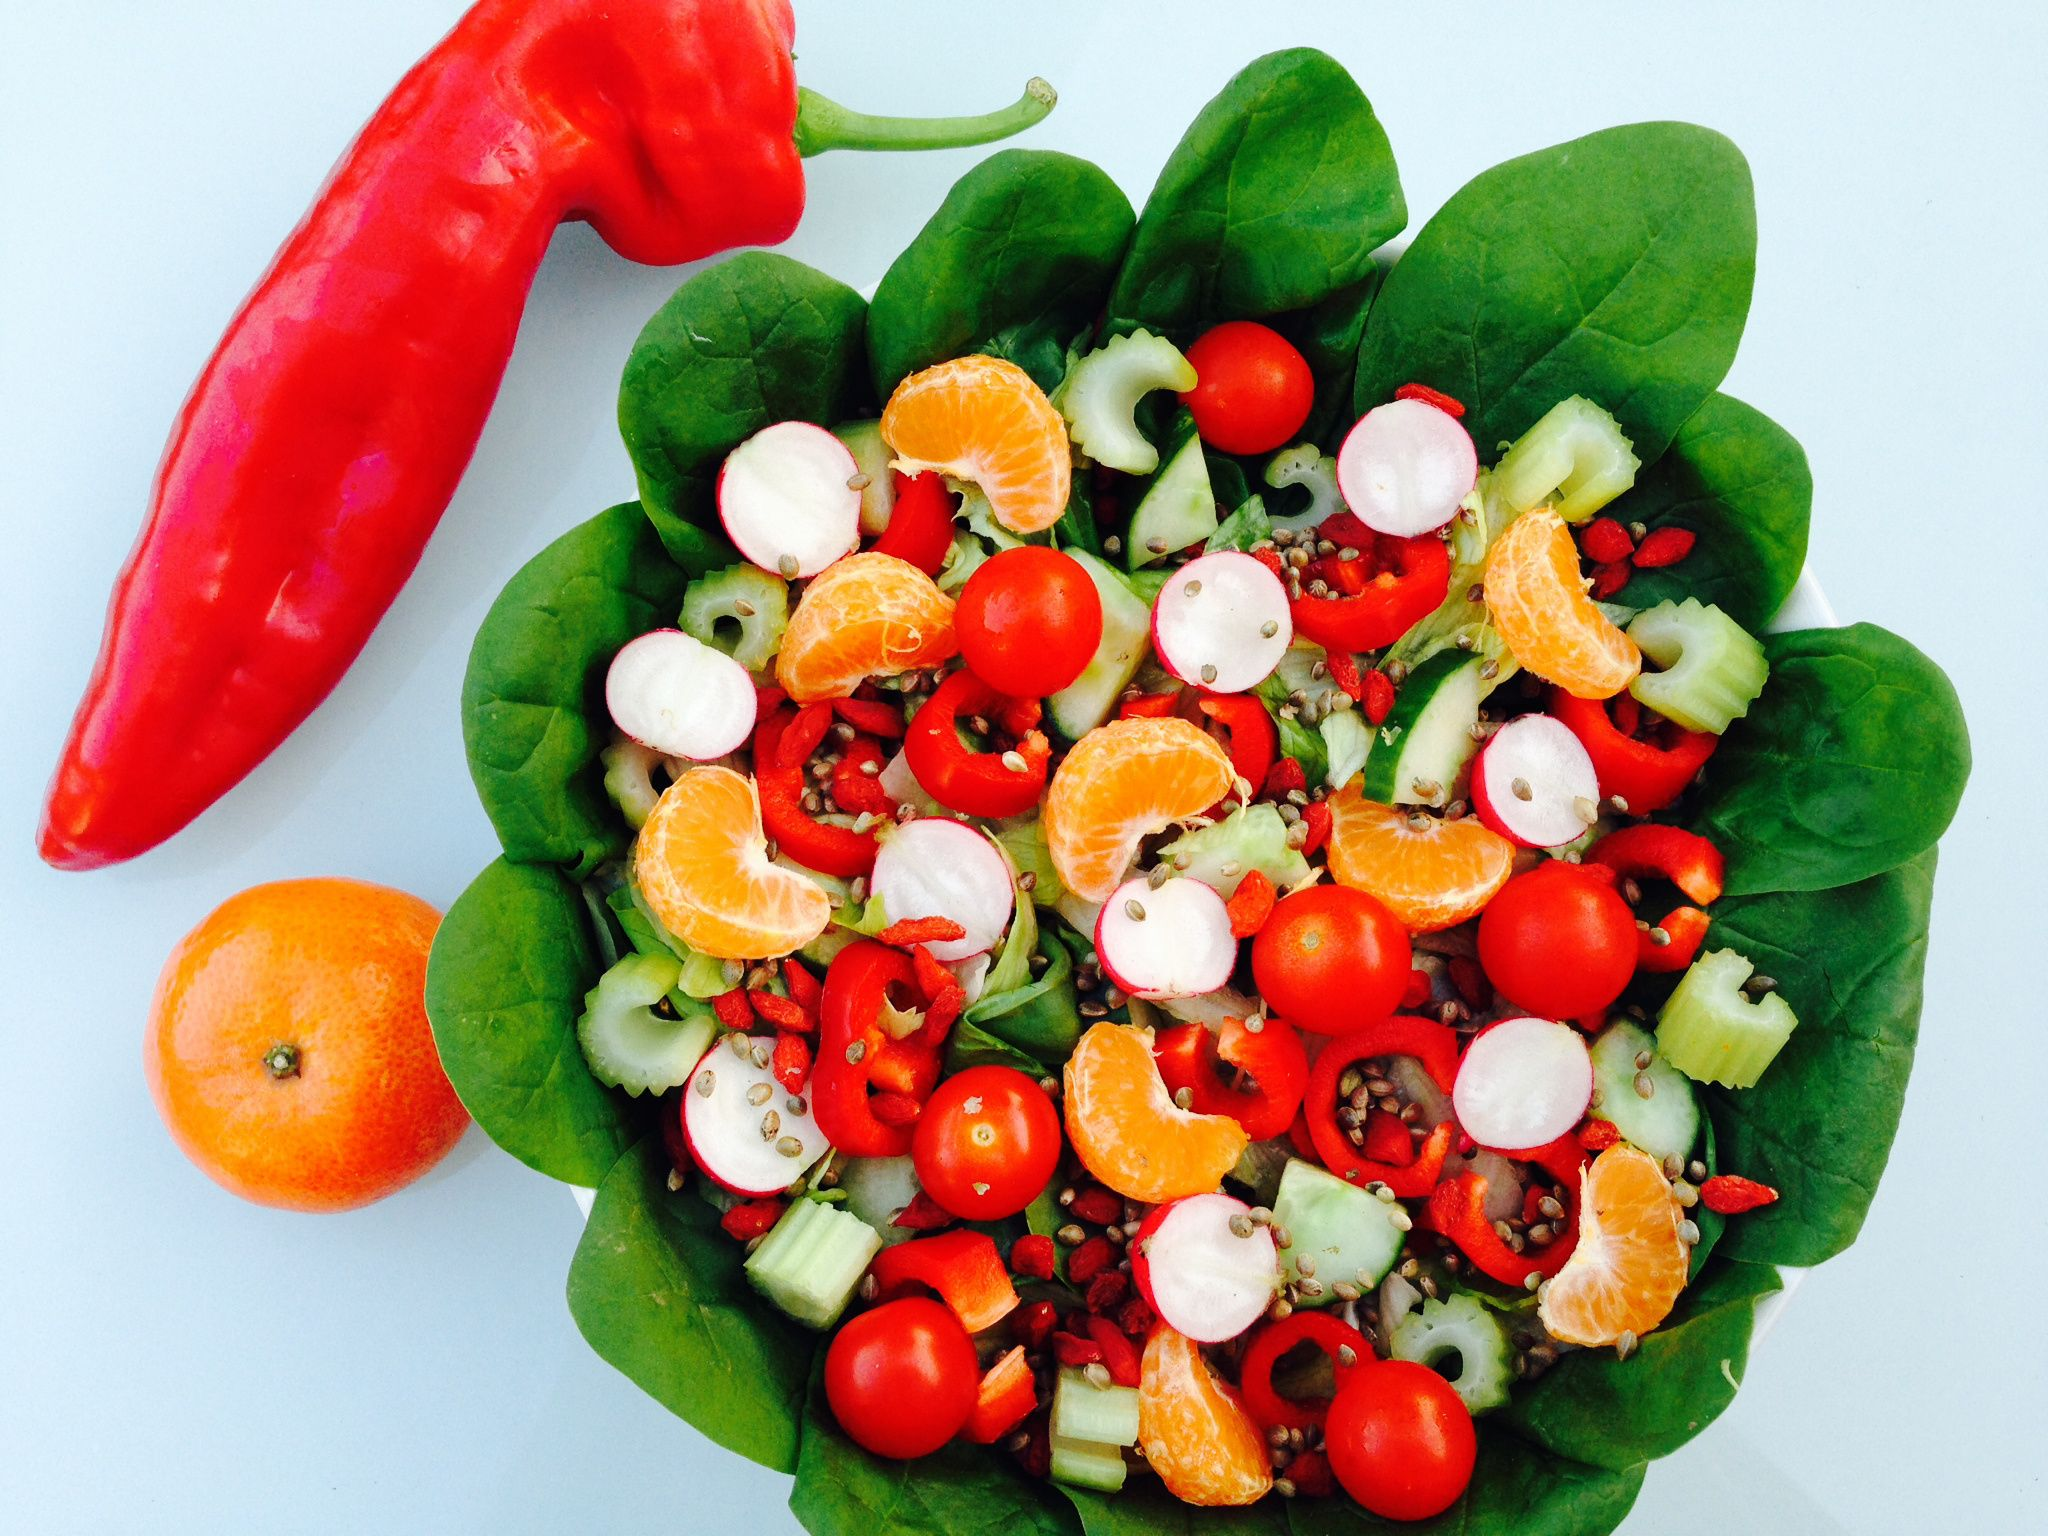 Salad inspiration and favourite dressings. Easy, delicious & healthy & takes less than 5 minutes to make